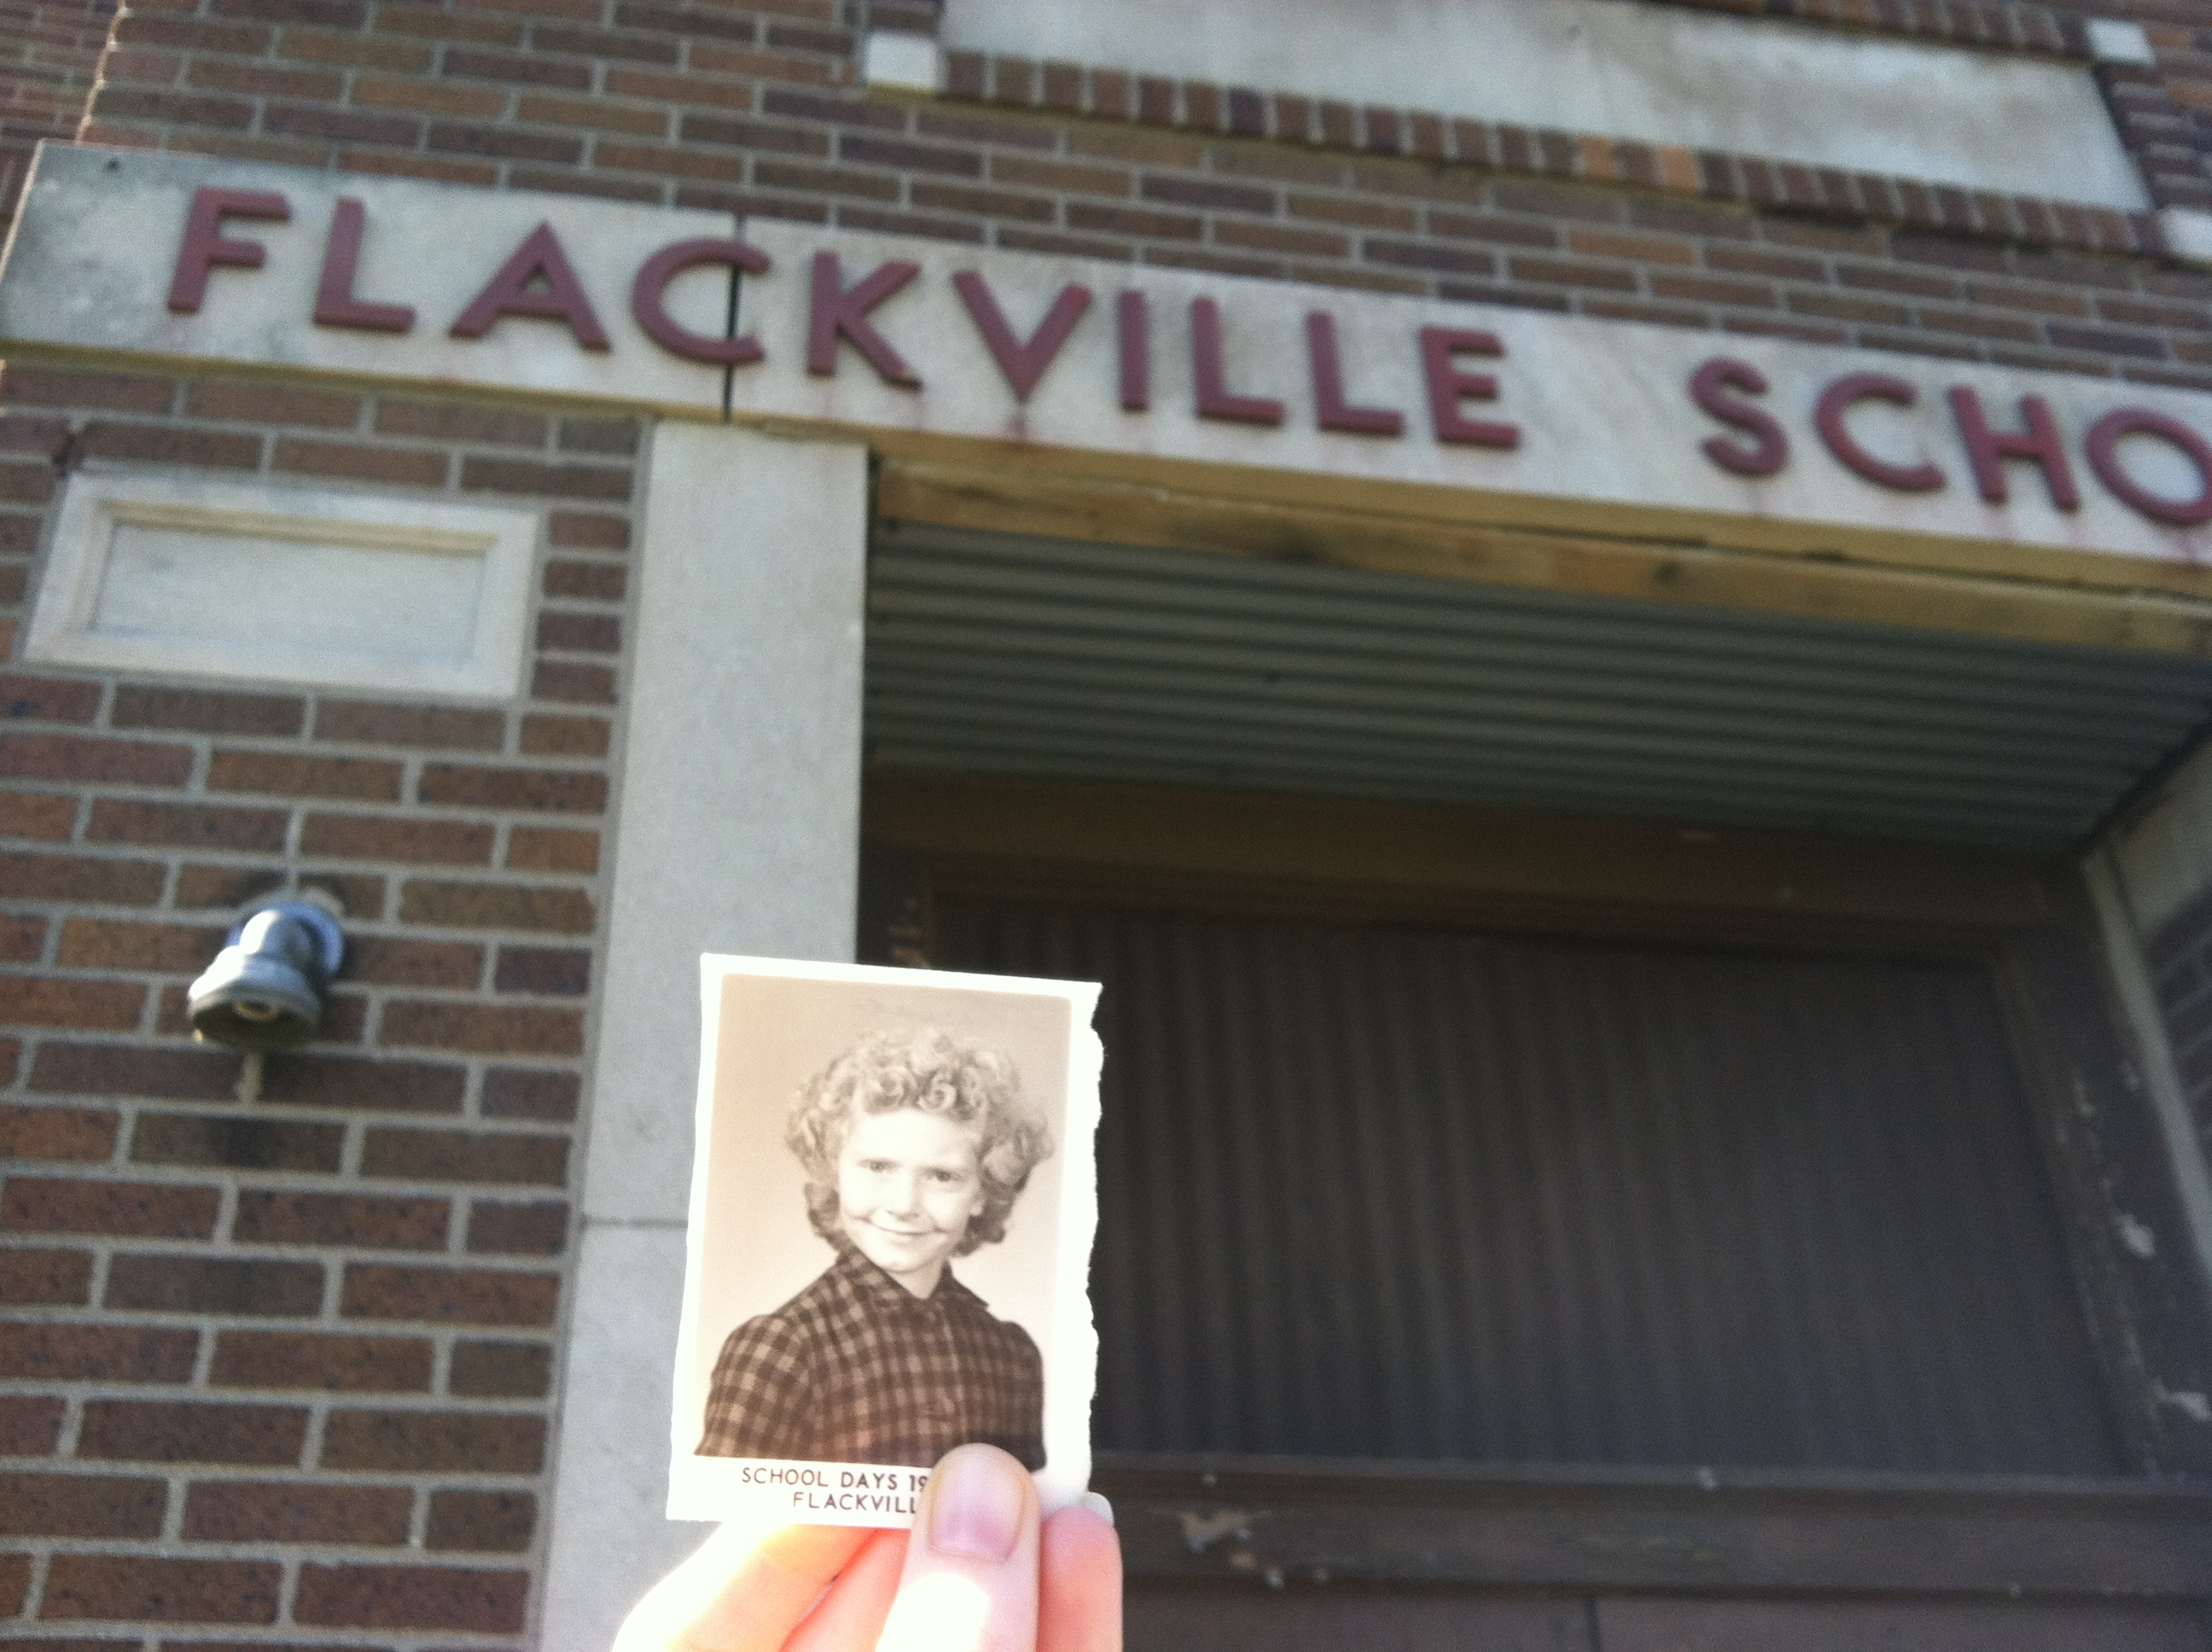 Sunday Prayers: Flackville School